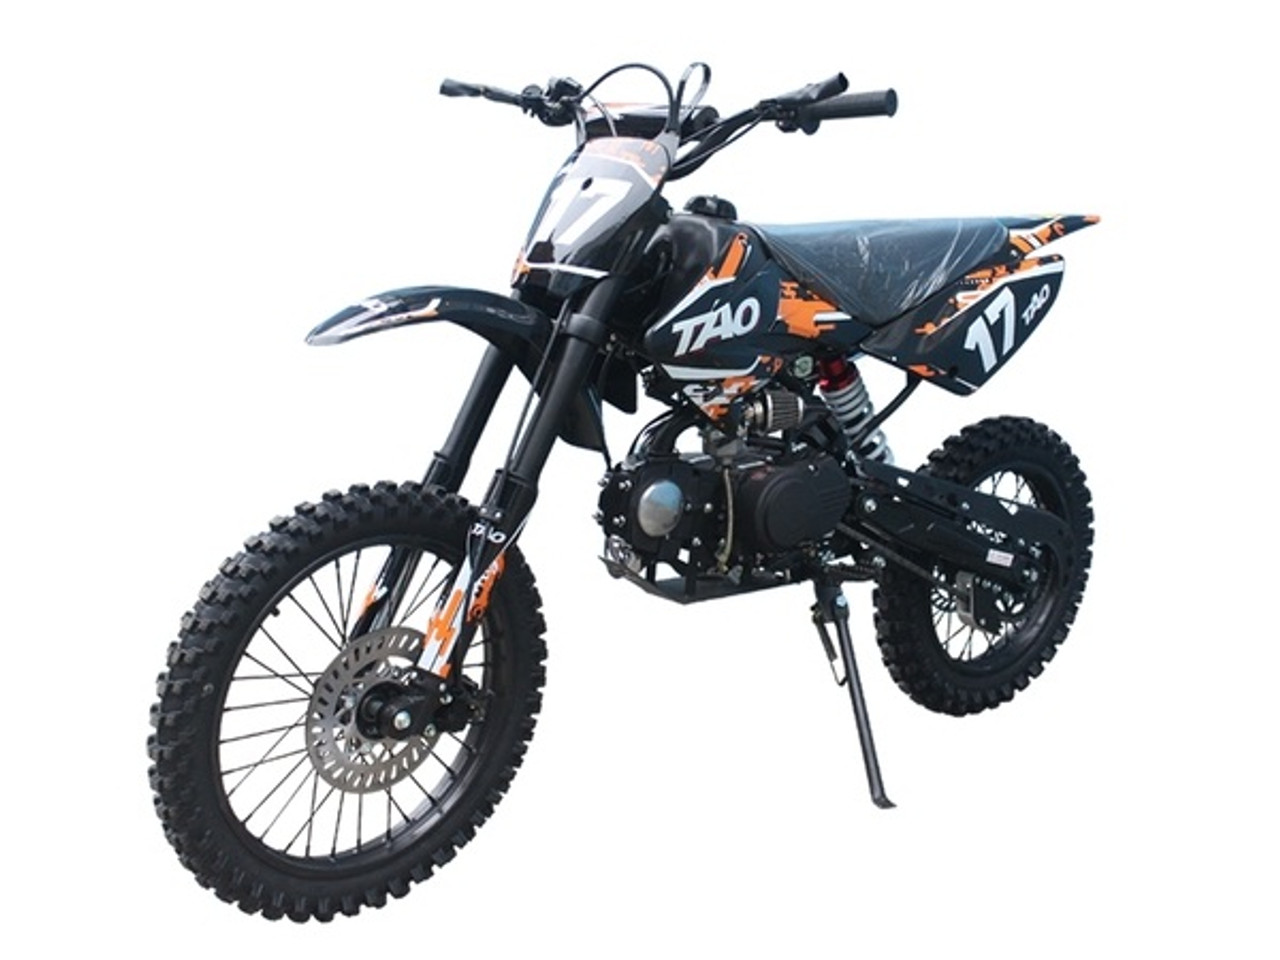 """Taotao High End Dirt Bike 17 125CC Big With 17"""" Tires, Air Cooled, 4-Stroke, 1-Cylinder - Fully Assembled And Tested"""